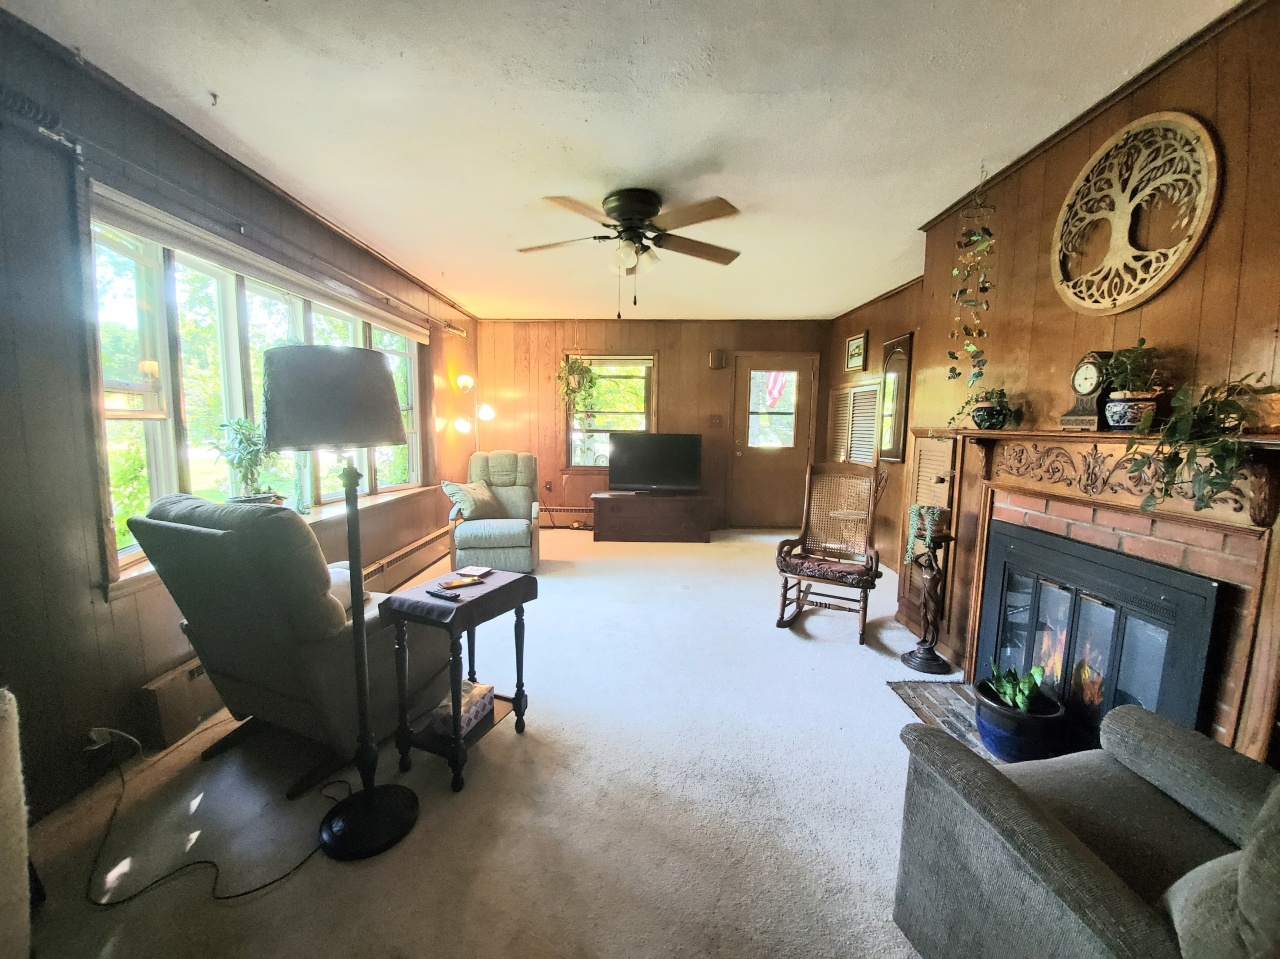 3413 12th St, Sheboygan, Wisconsin 53083, 4 Bedrooms Bedrooms, 7 Rooms Rooms,1 BathroomBathrooms,Single-family,For Sale,12th St,1706059